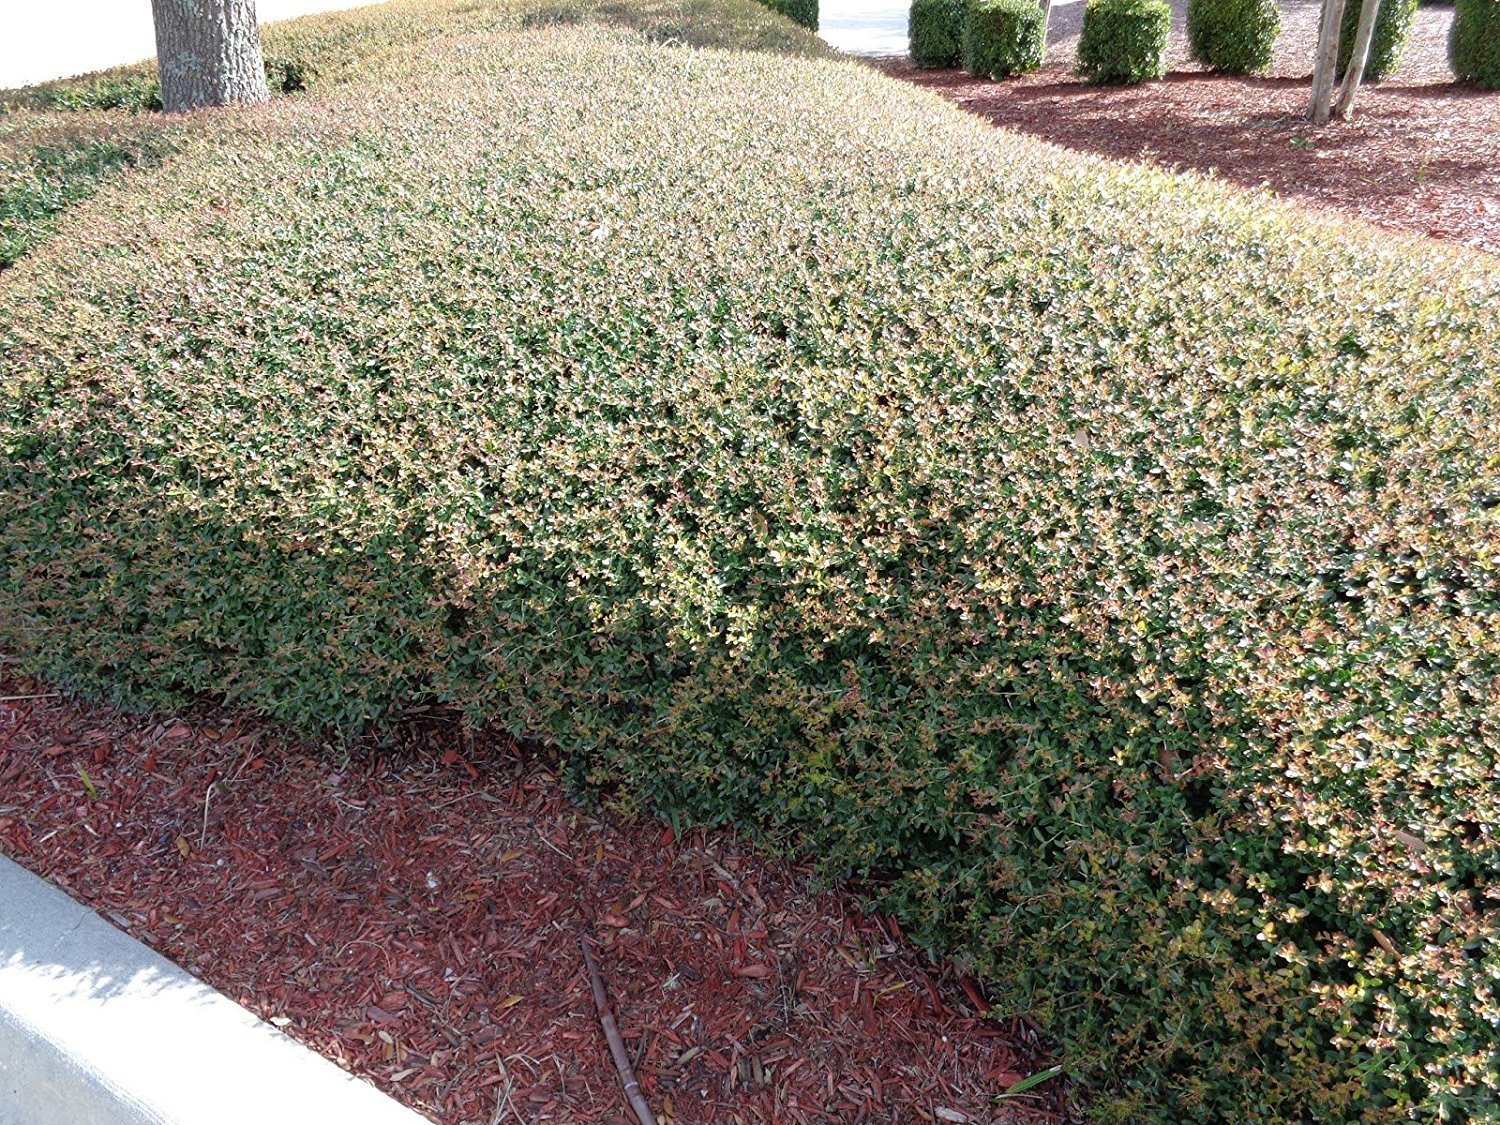 Ilex Schilling Stokes Dwarf Yaupon Holly Vomitoria Qty 72 Fully Rooted Live Plants Evergreen Hedge by Florida Foliage (Image #4)